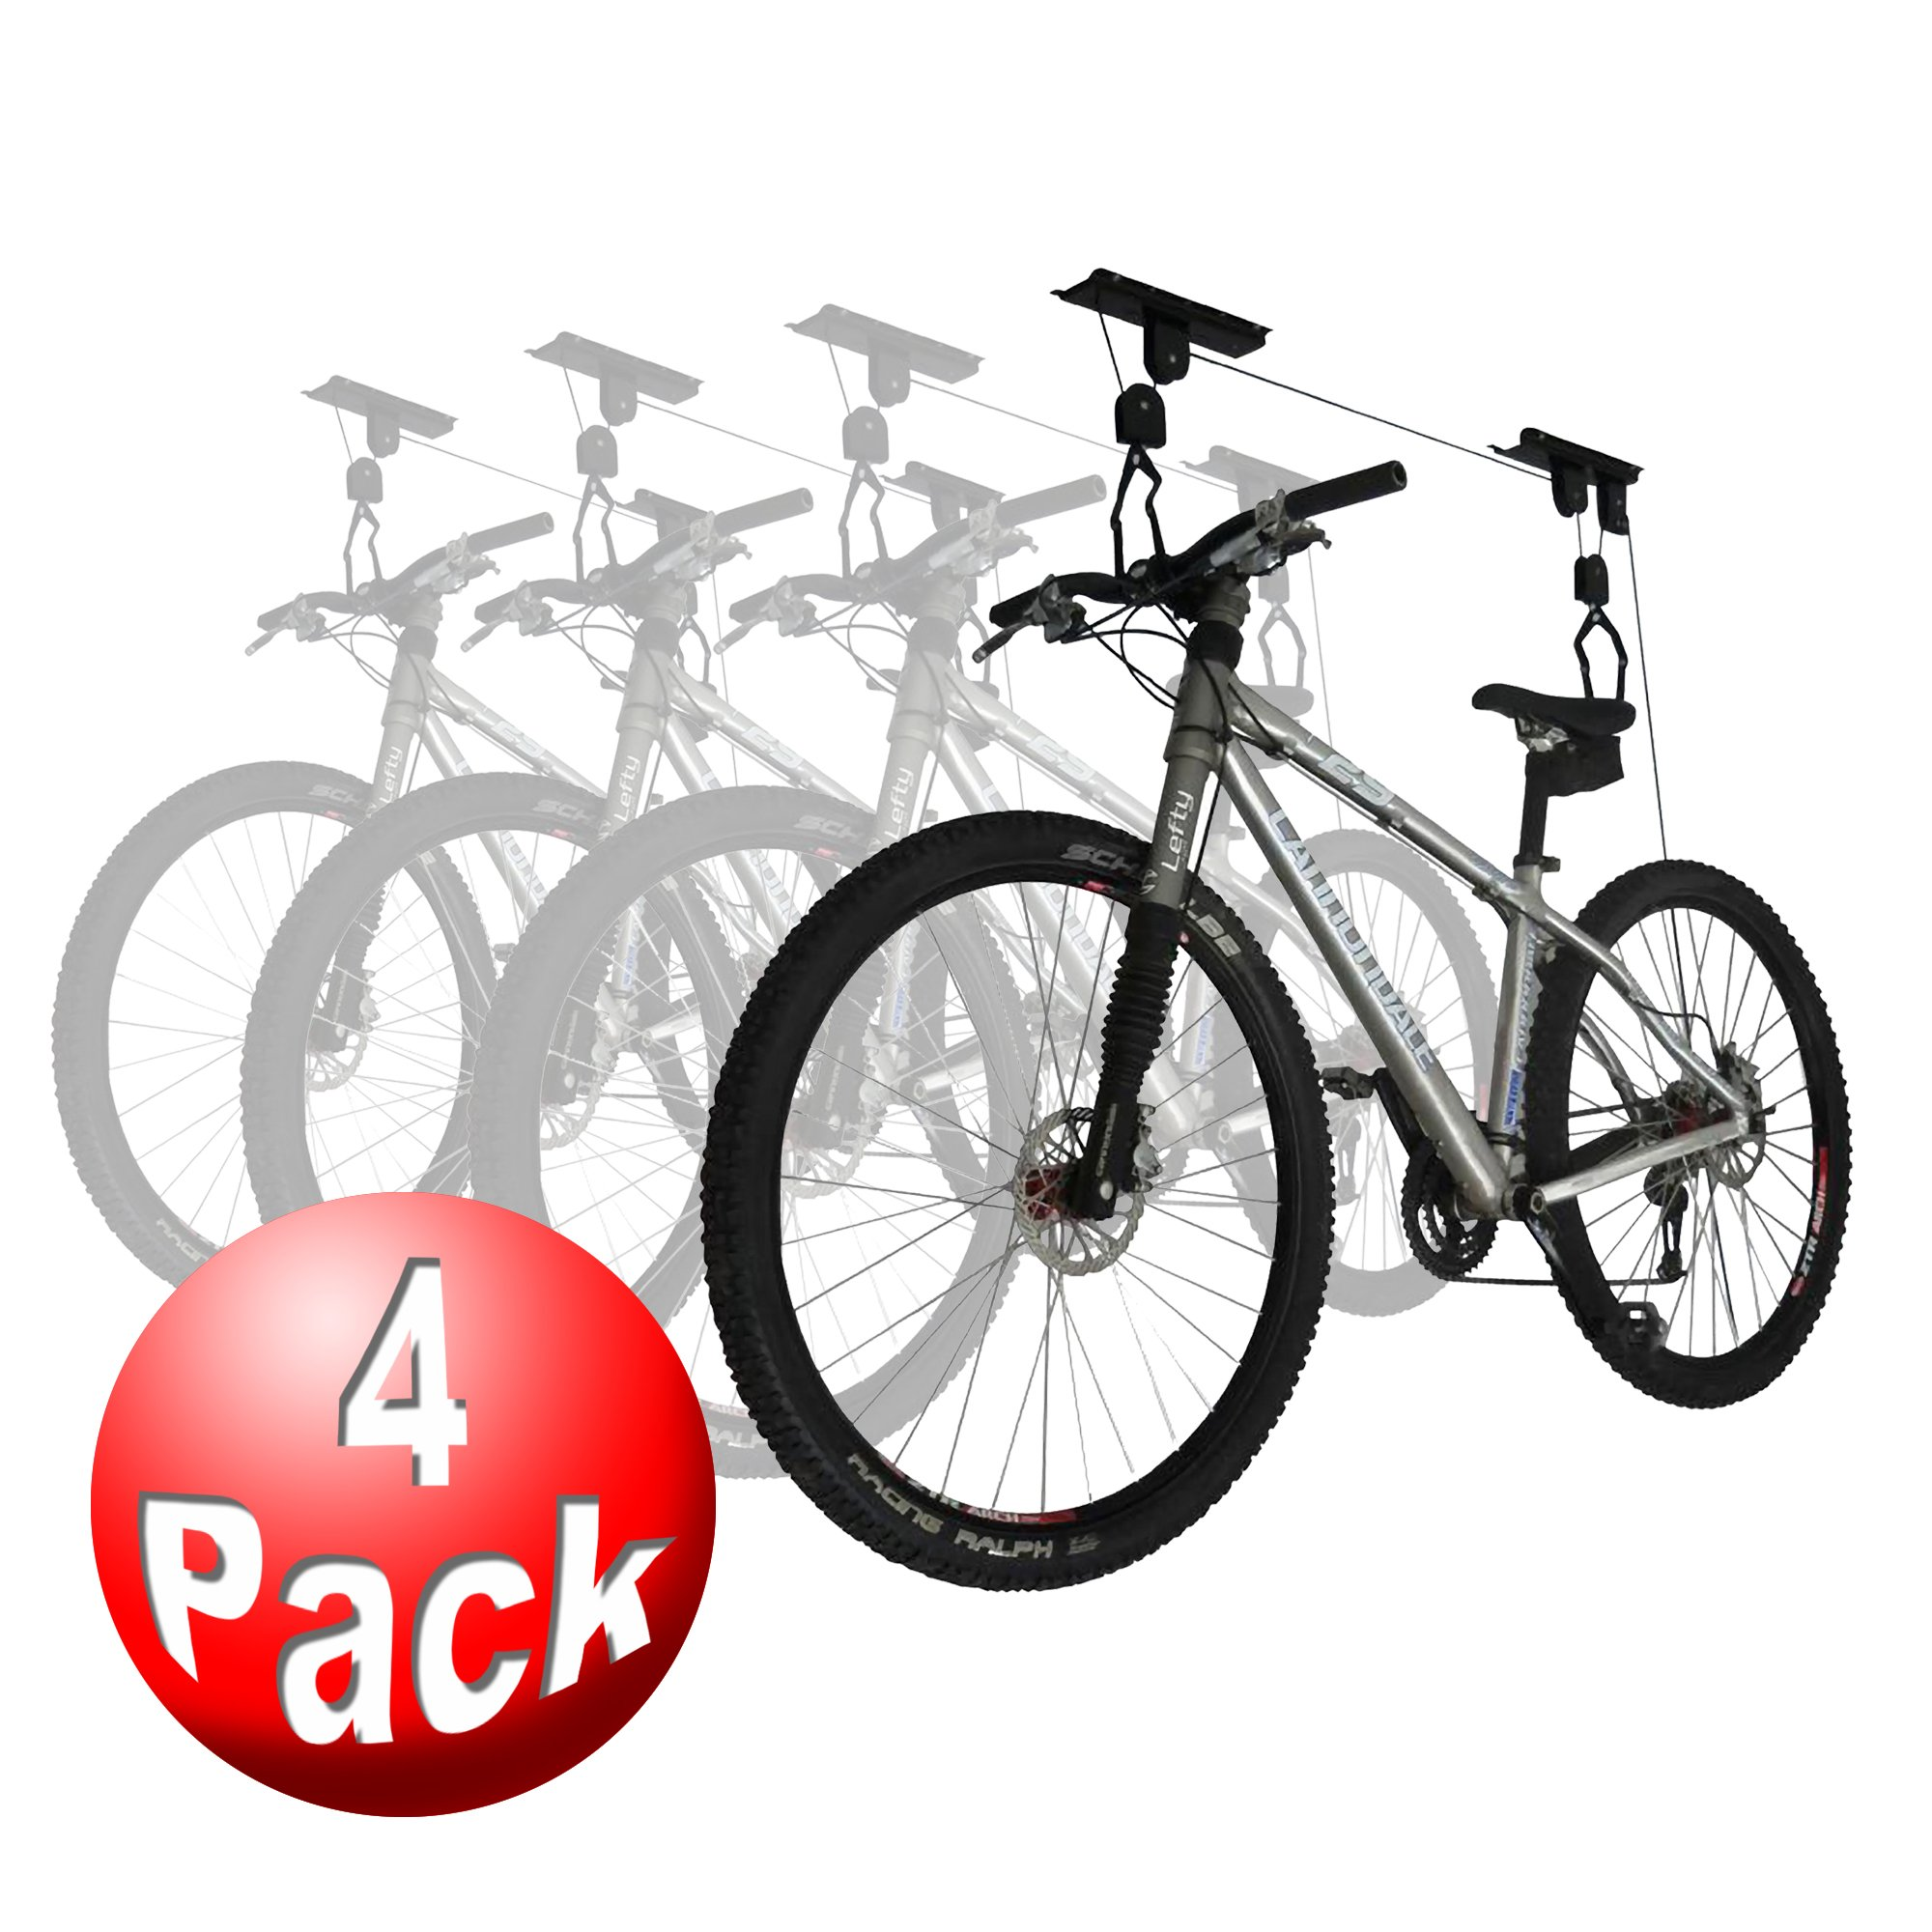 RAD Sportz Bicycle Hoist 4-Pack Quality Garage Storage Bike Lift with 100 lb Capacity Even Works as Ladder Lift Premium Quality by RAD Cycle Products (Image #1)